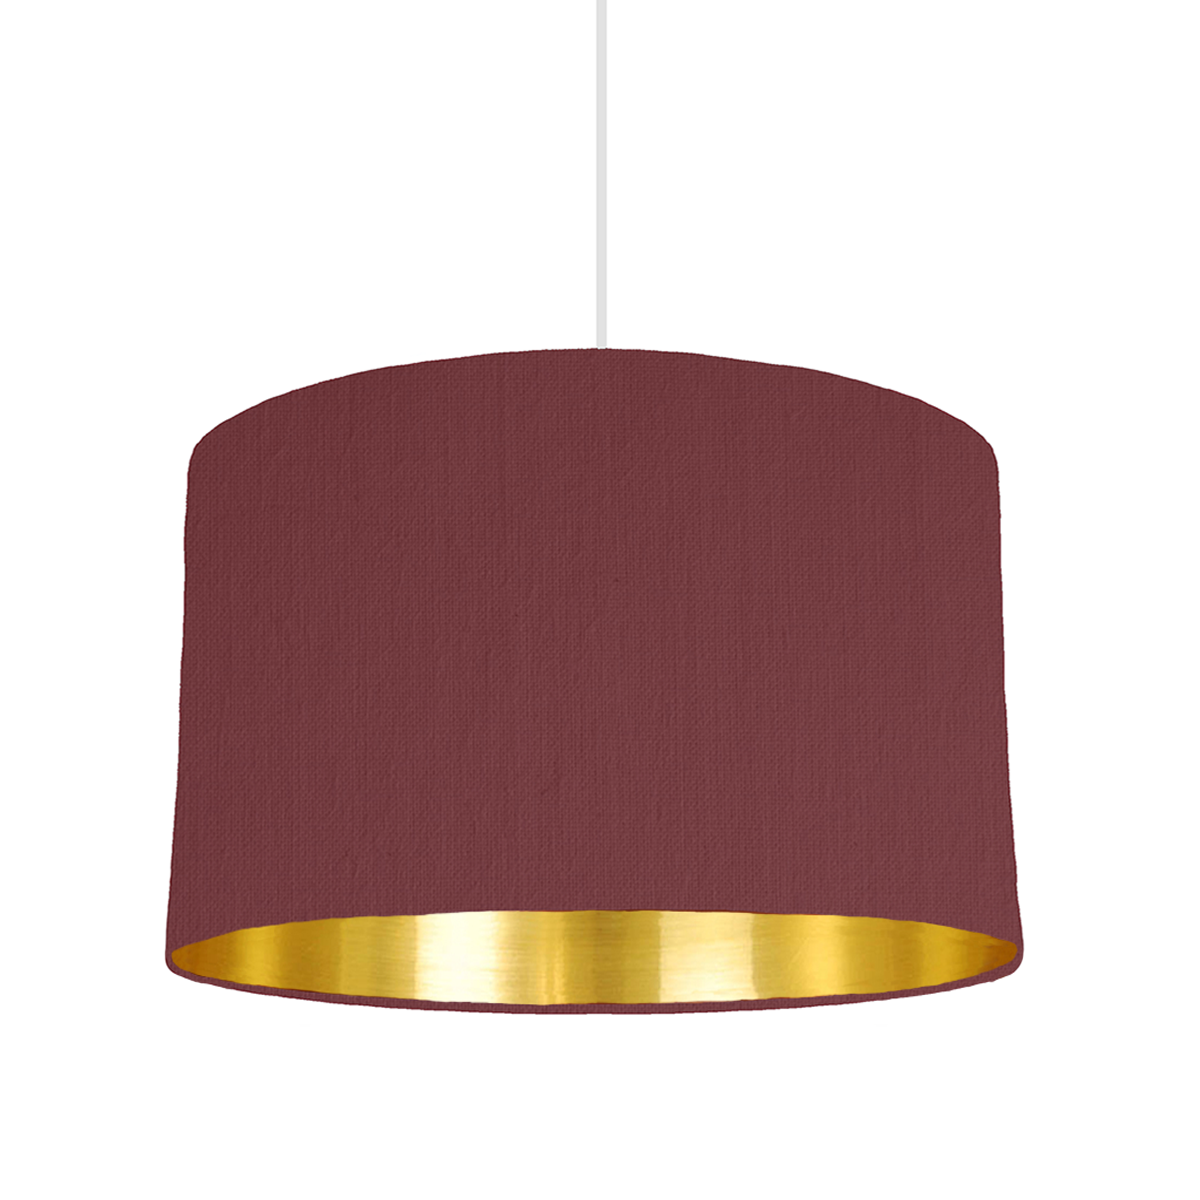 Wine red bespoke lampshade with gold mirrored lining custom bymarie is a bespoke lampshade designer based in london specializing in custom made lampshades with mix match lining colours aloadofball Image collections